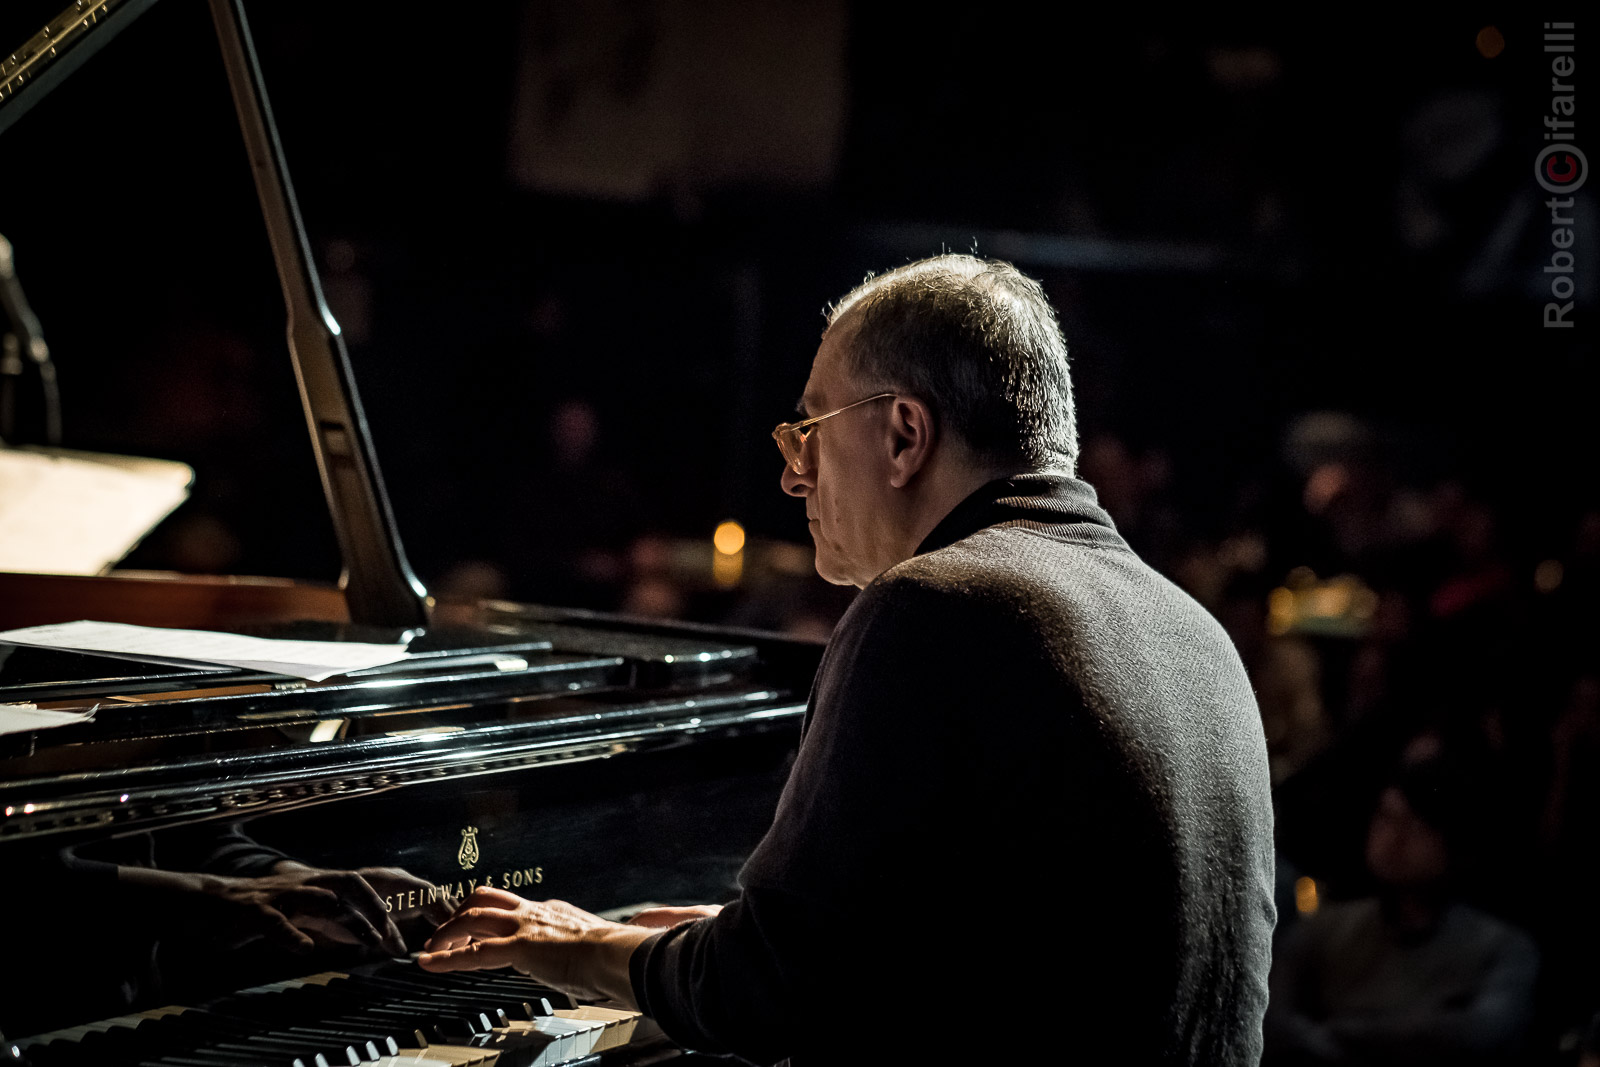 Enrico Pieranunzi  Fly Trio at Bluenote in Milan